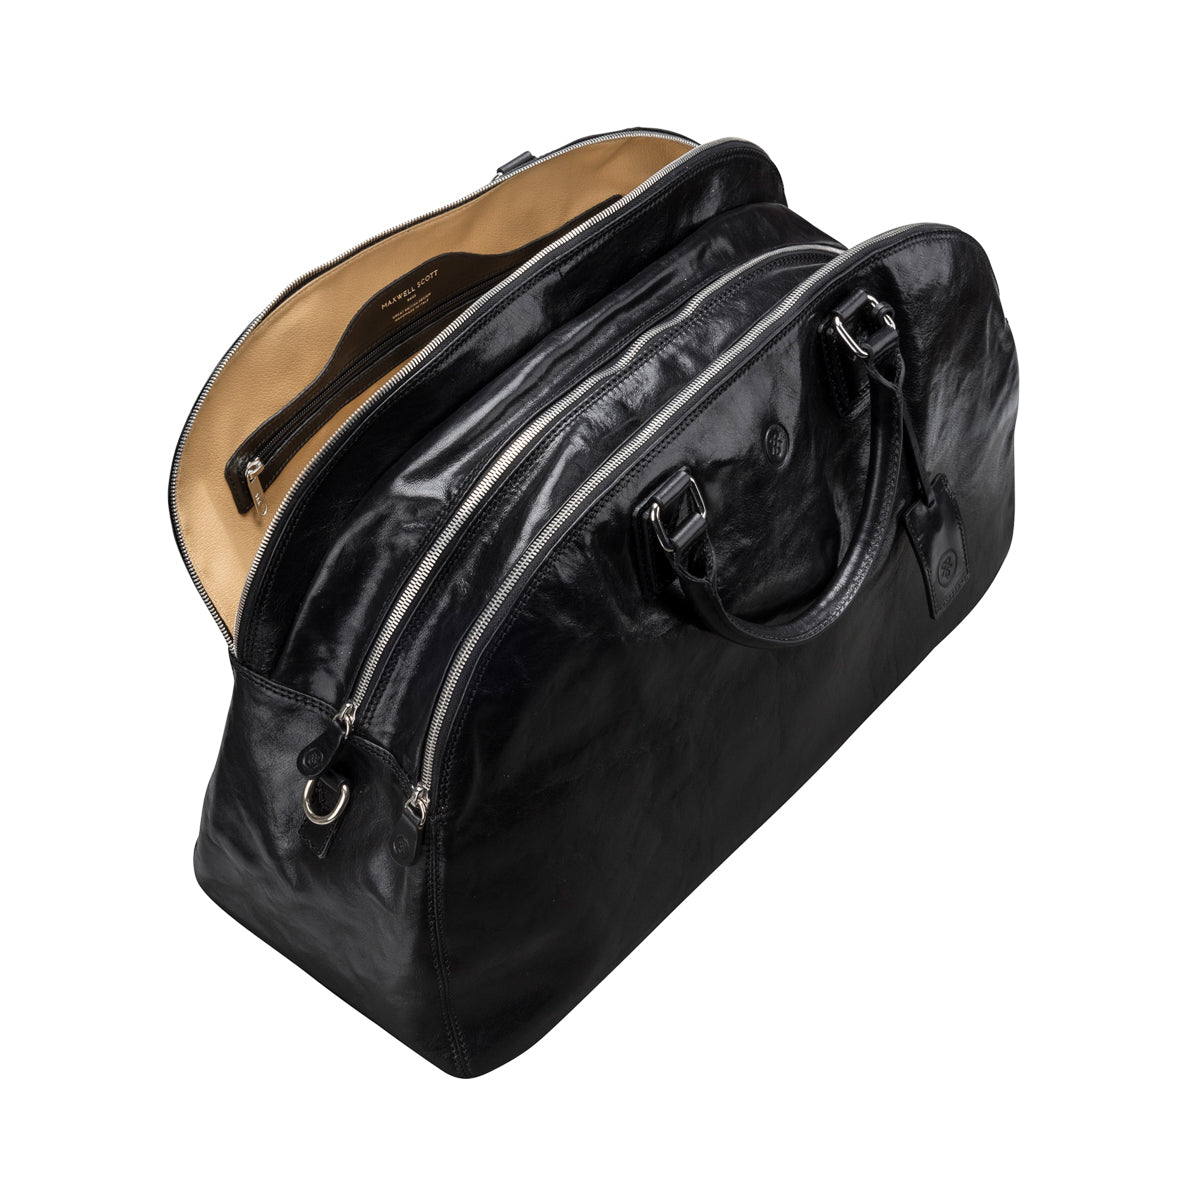 Image 5 of the 'Liliana' Black Veg-Tanned Leather Holdall